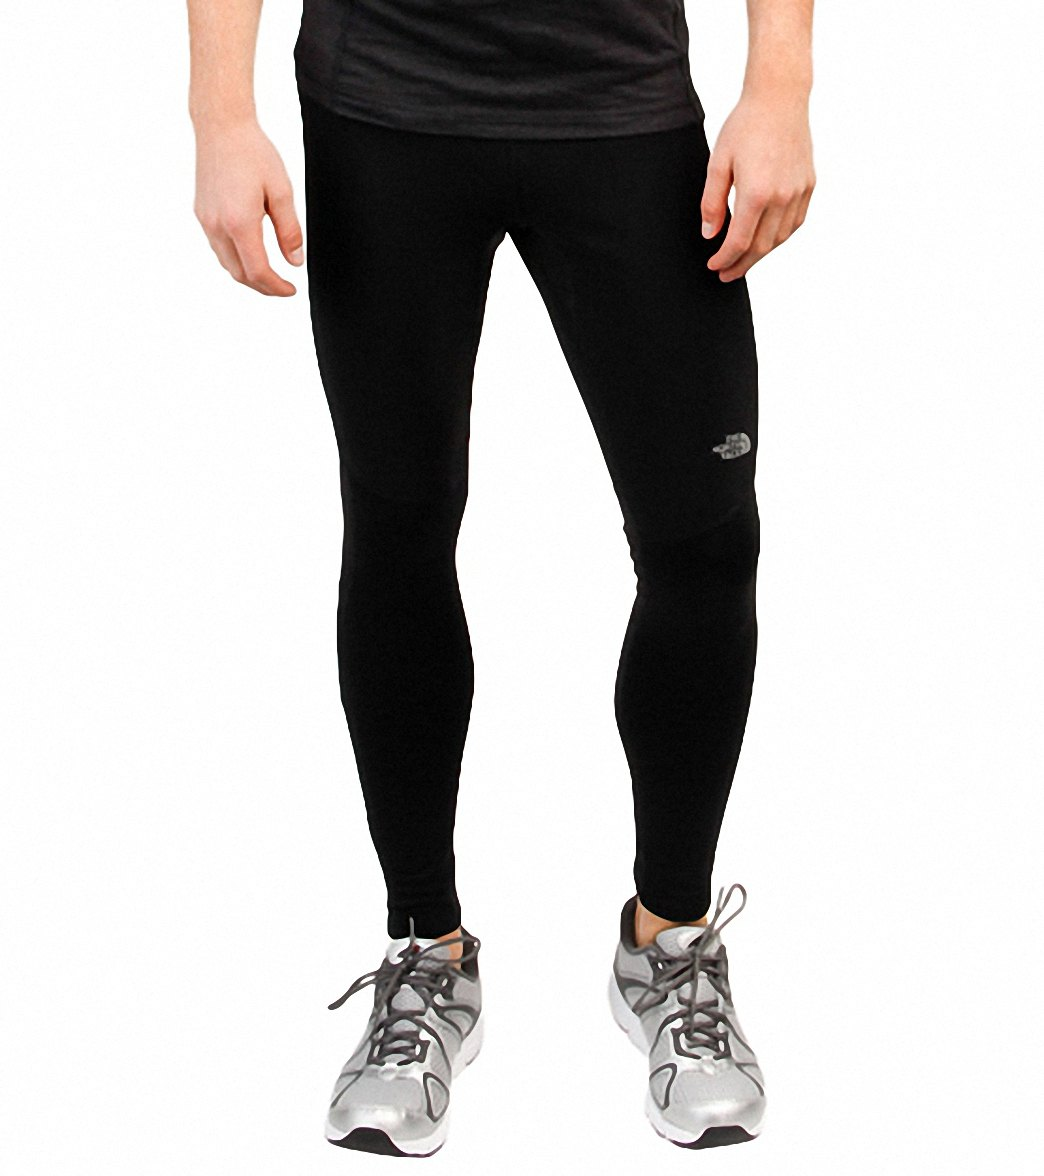 eaaecf093c485 The North Face Men's Winter Warm Running Tight at SwimOutlet.com ...